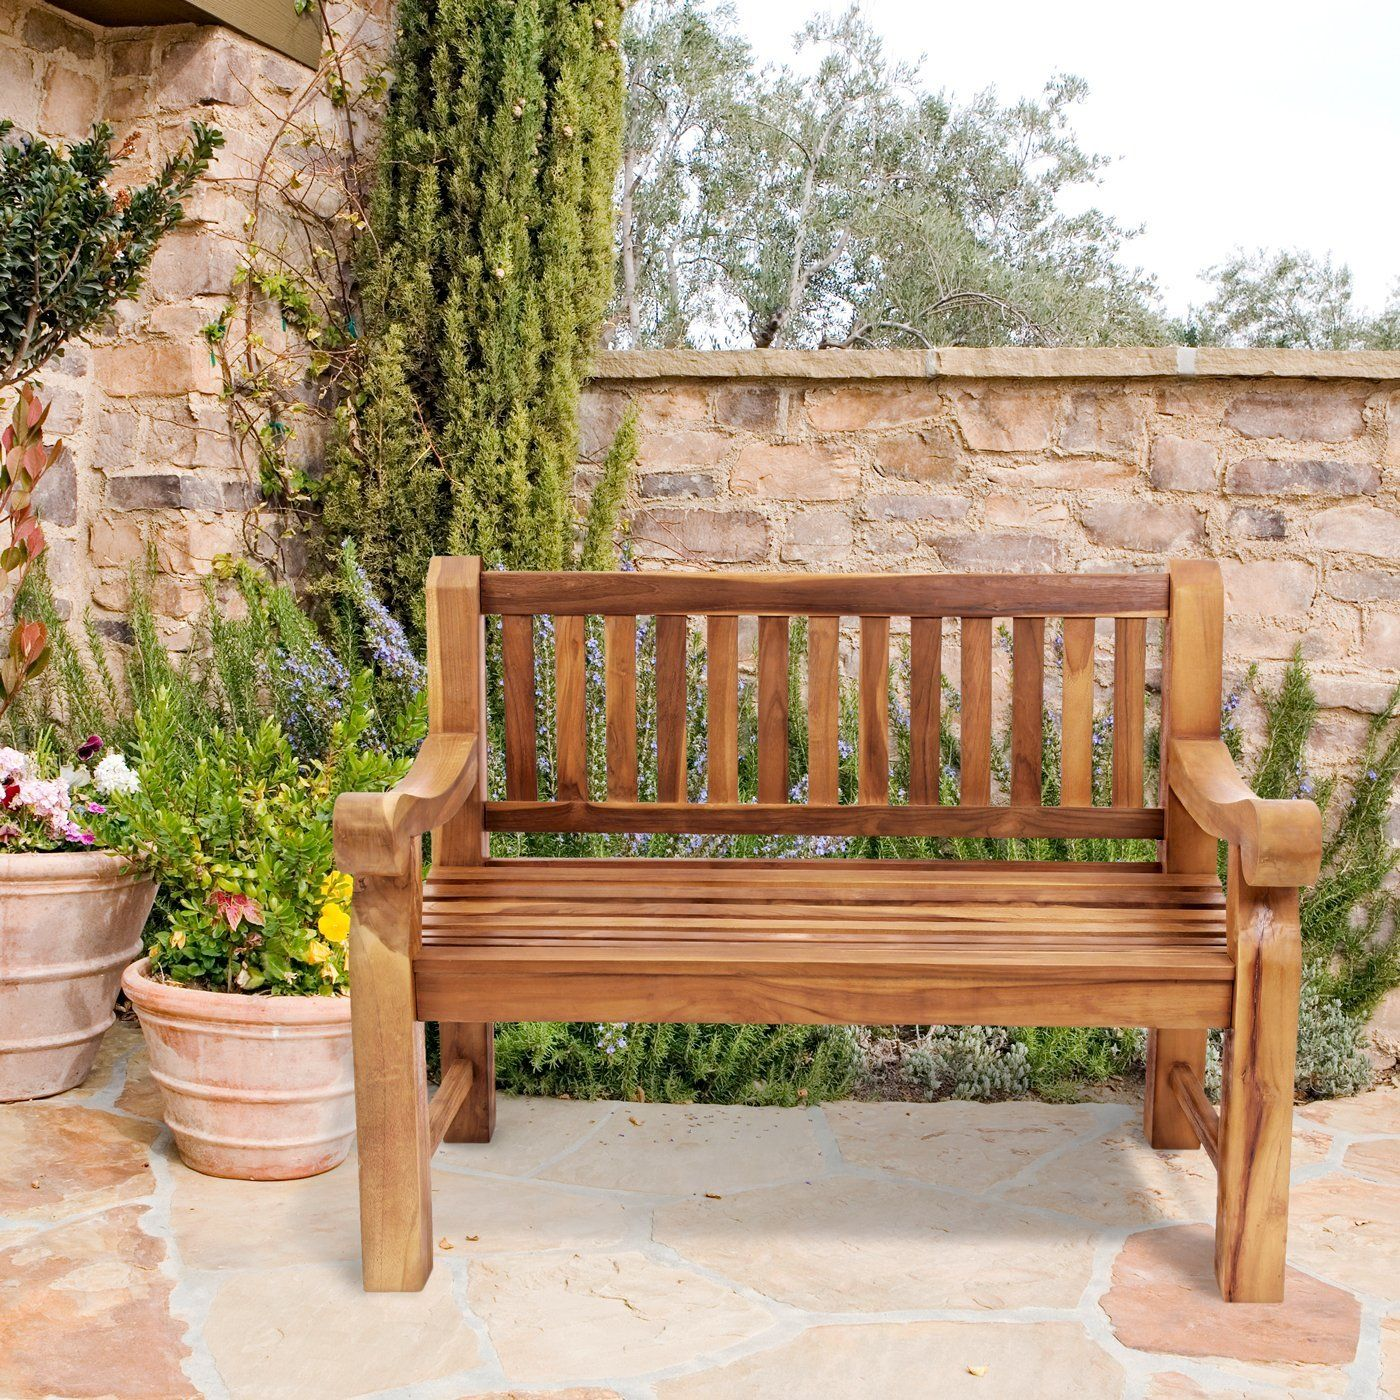 Superior quality Garden Bench for two in Chunky Solid Teak: Amazon ...